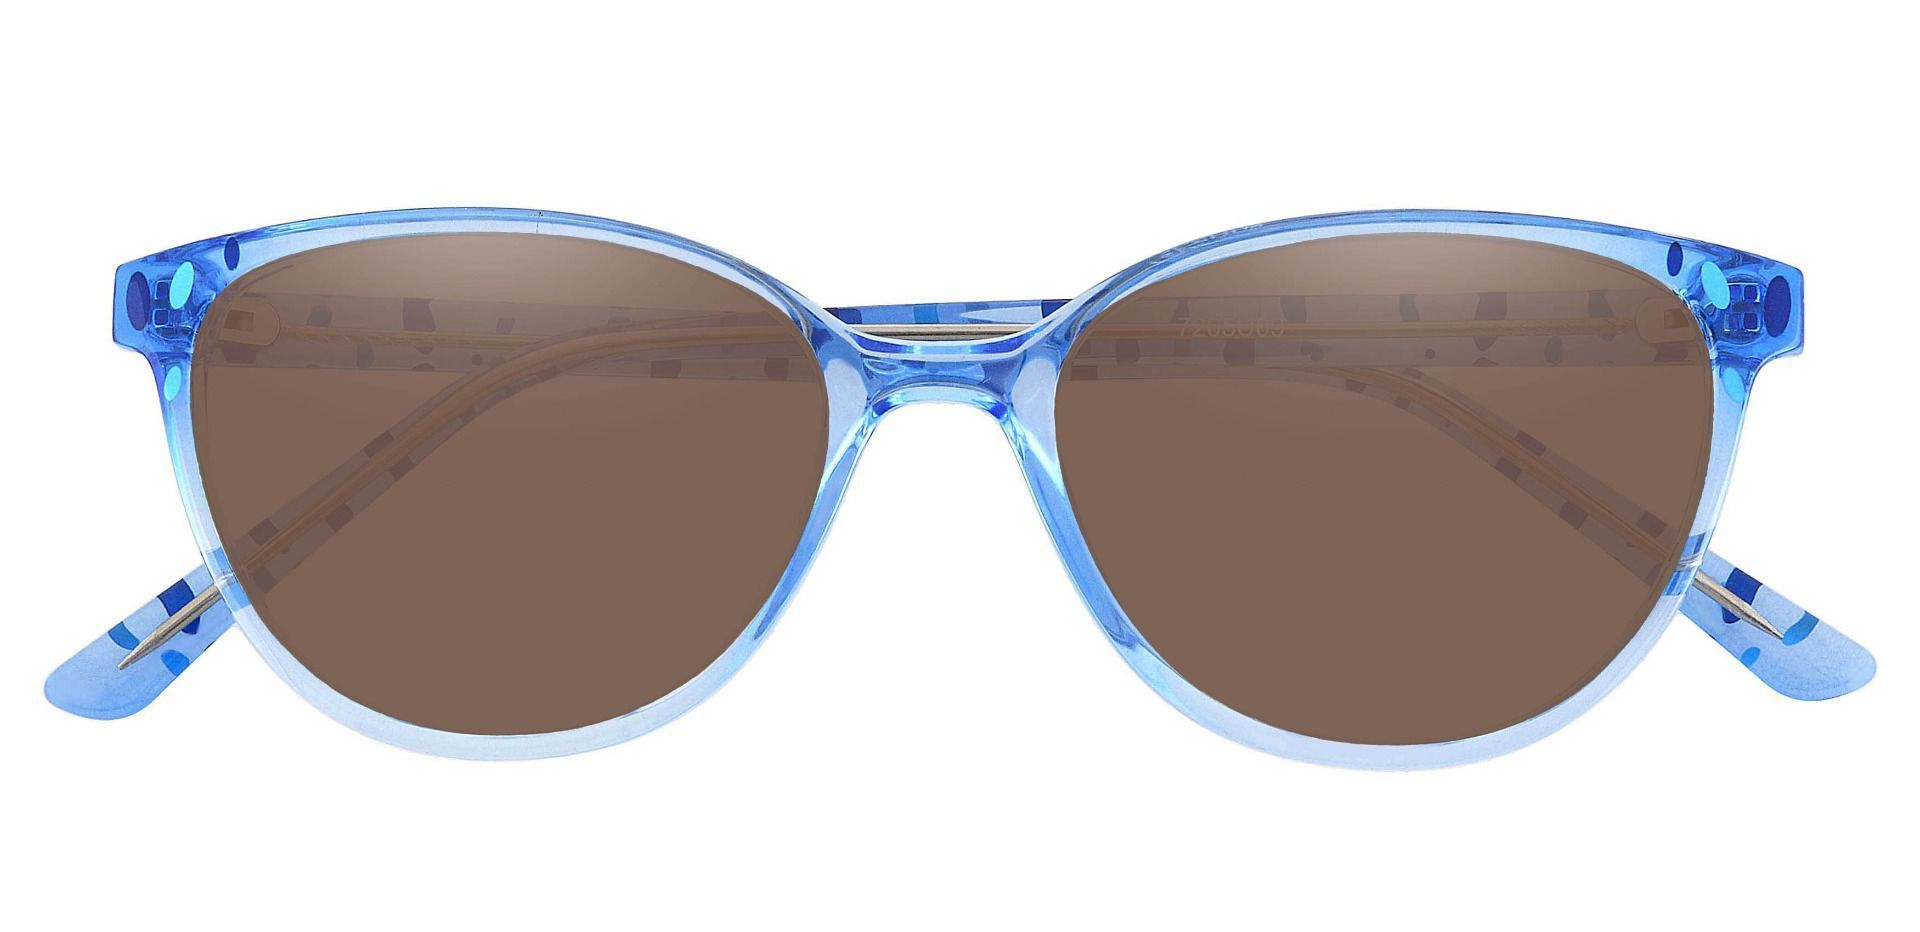 Carma Oval Prescription Sunglasses - Blue Frame With Brown Lenses